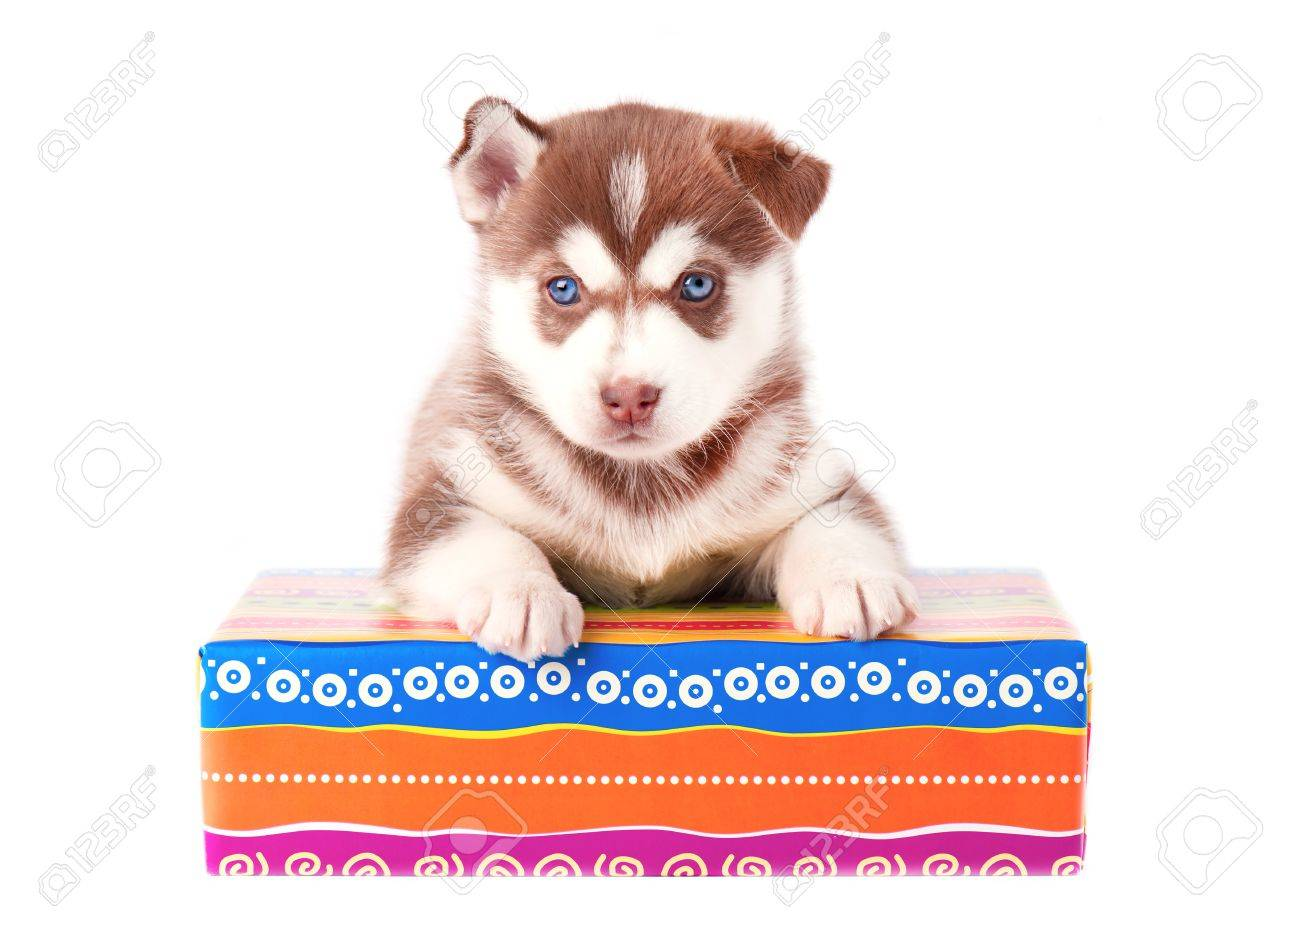 Small Puppy Siberian Husky Red Color On A Colored Gift Box Isolated